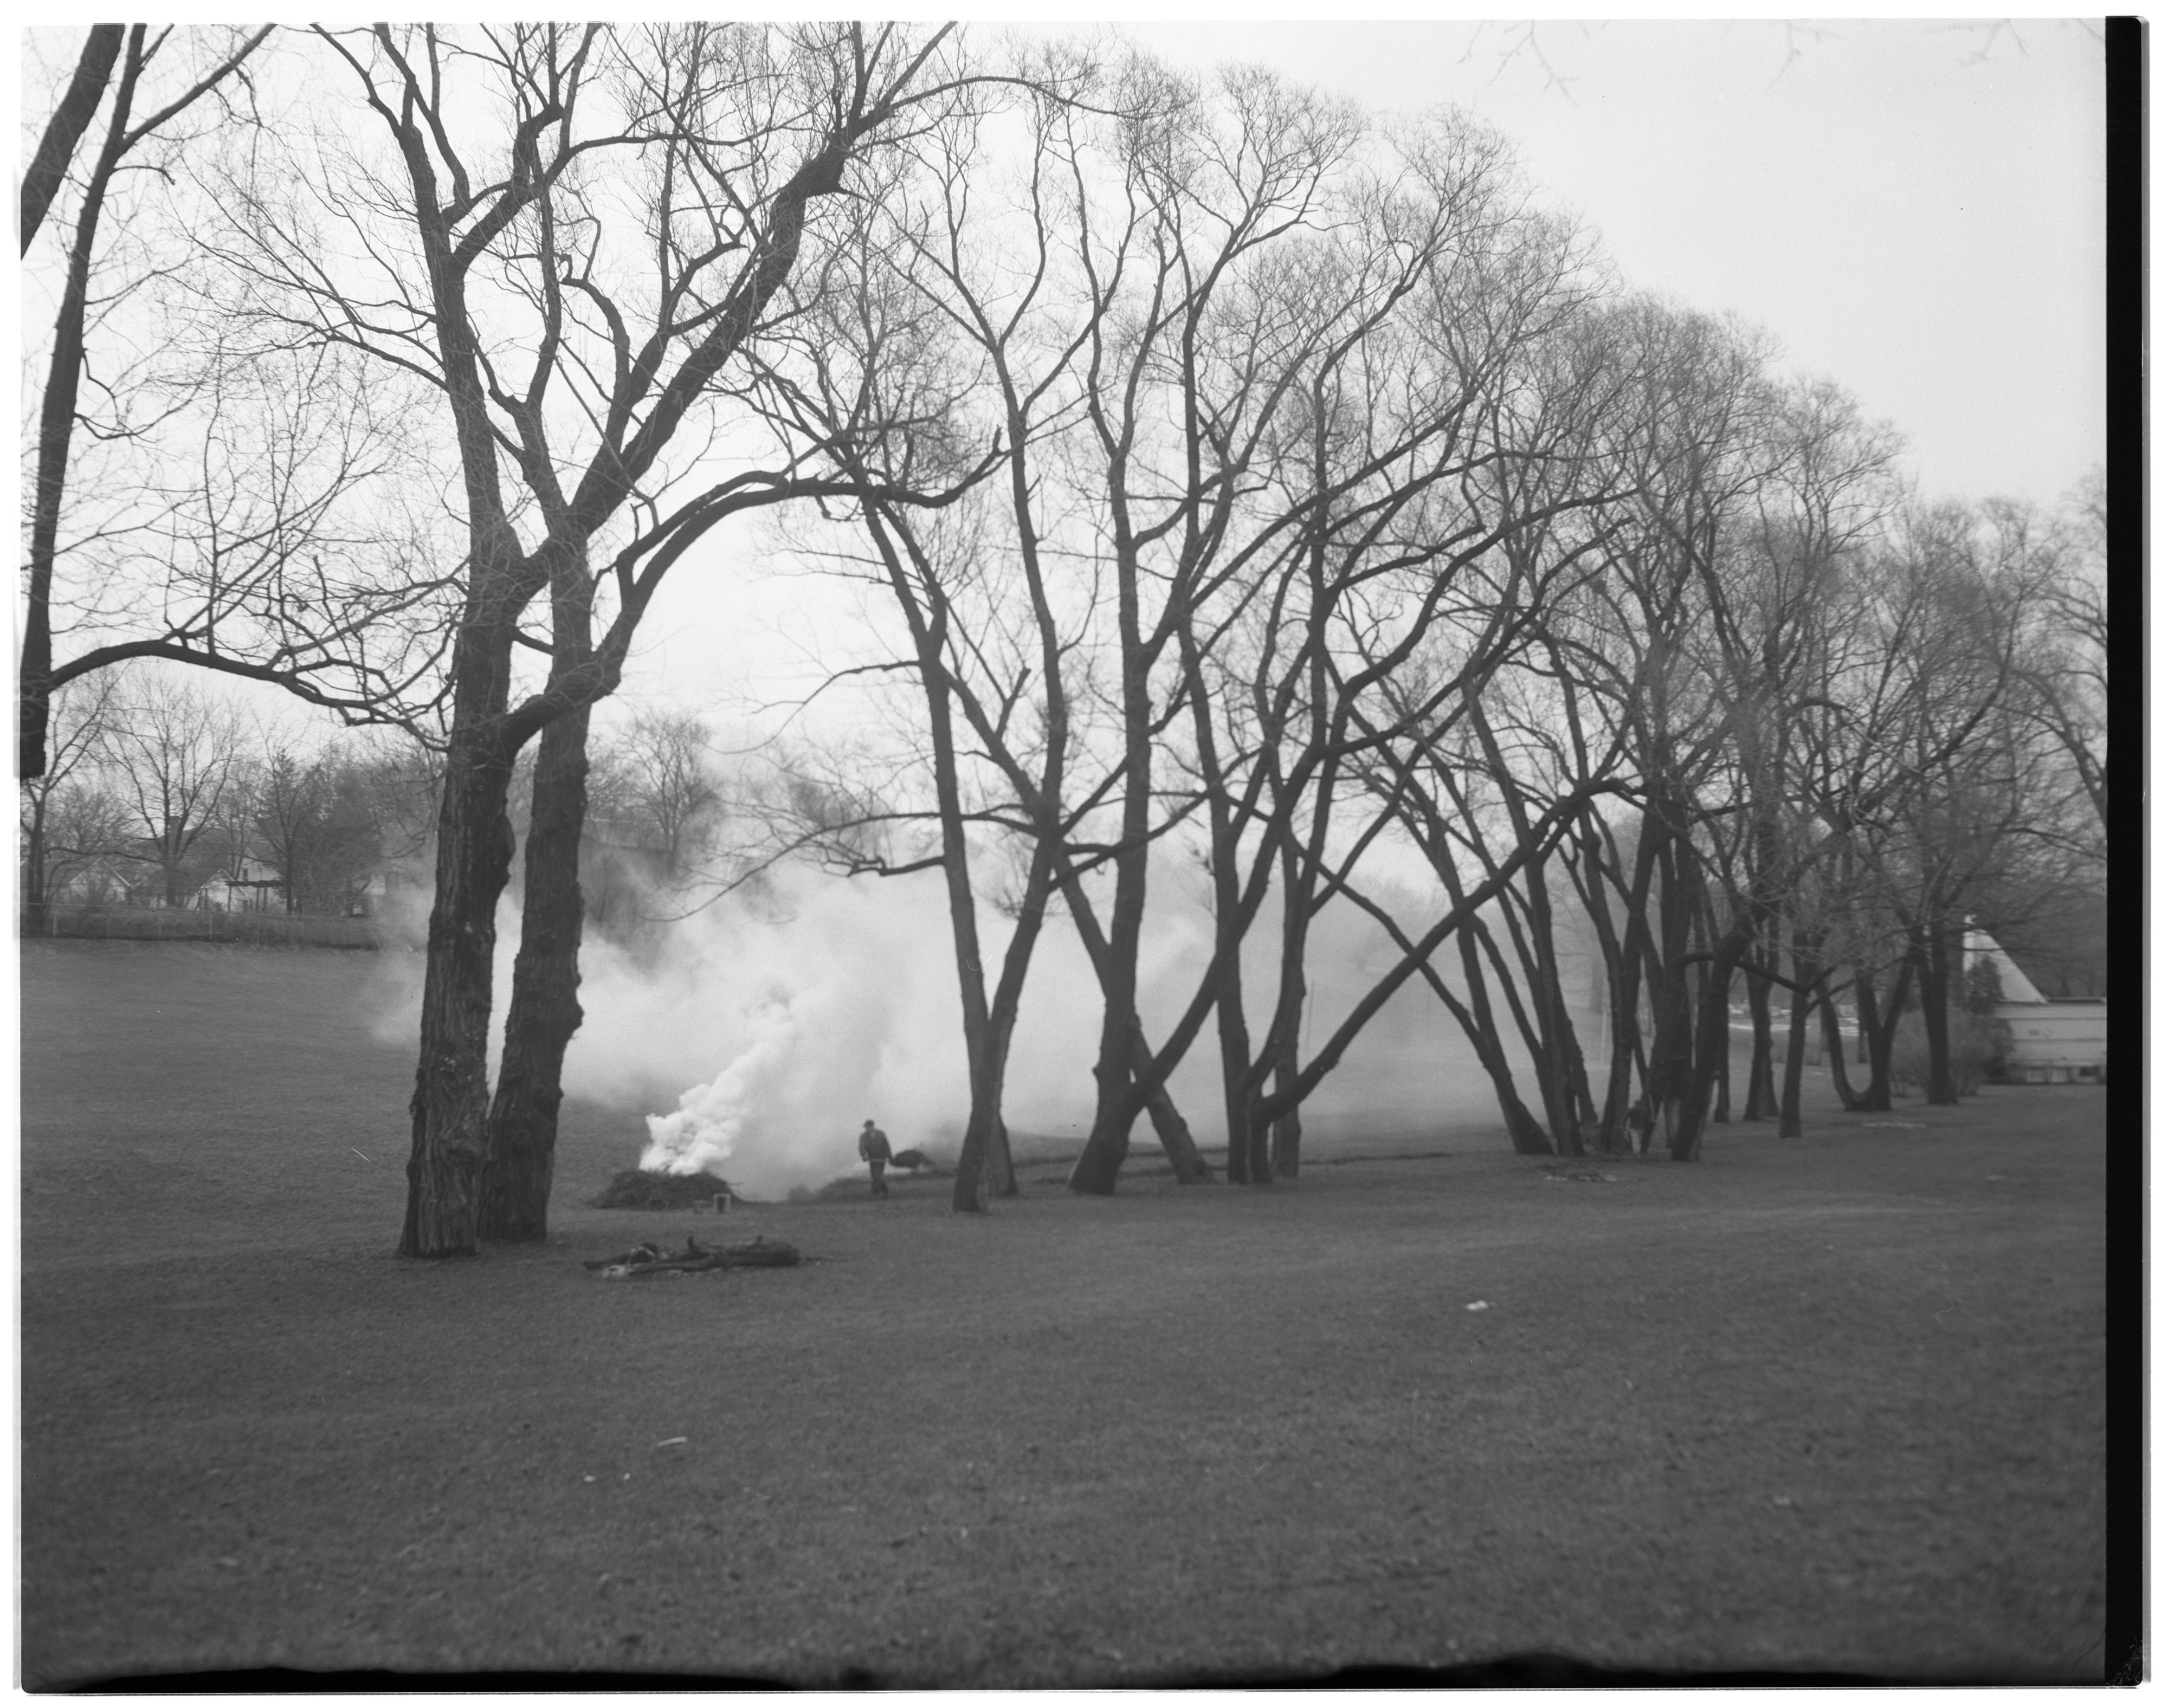 Spring Cleaning, West Park image